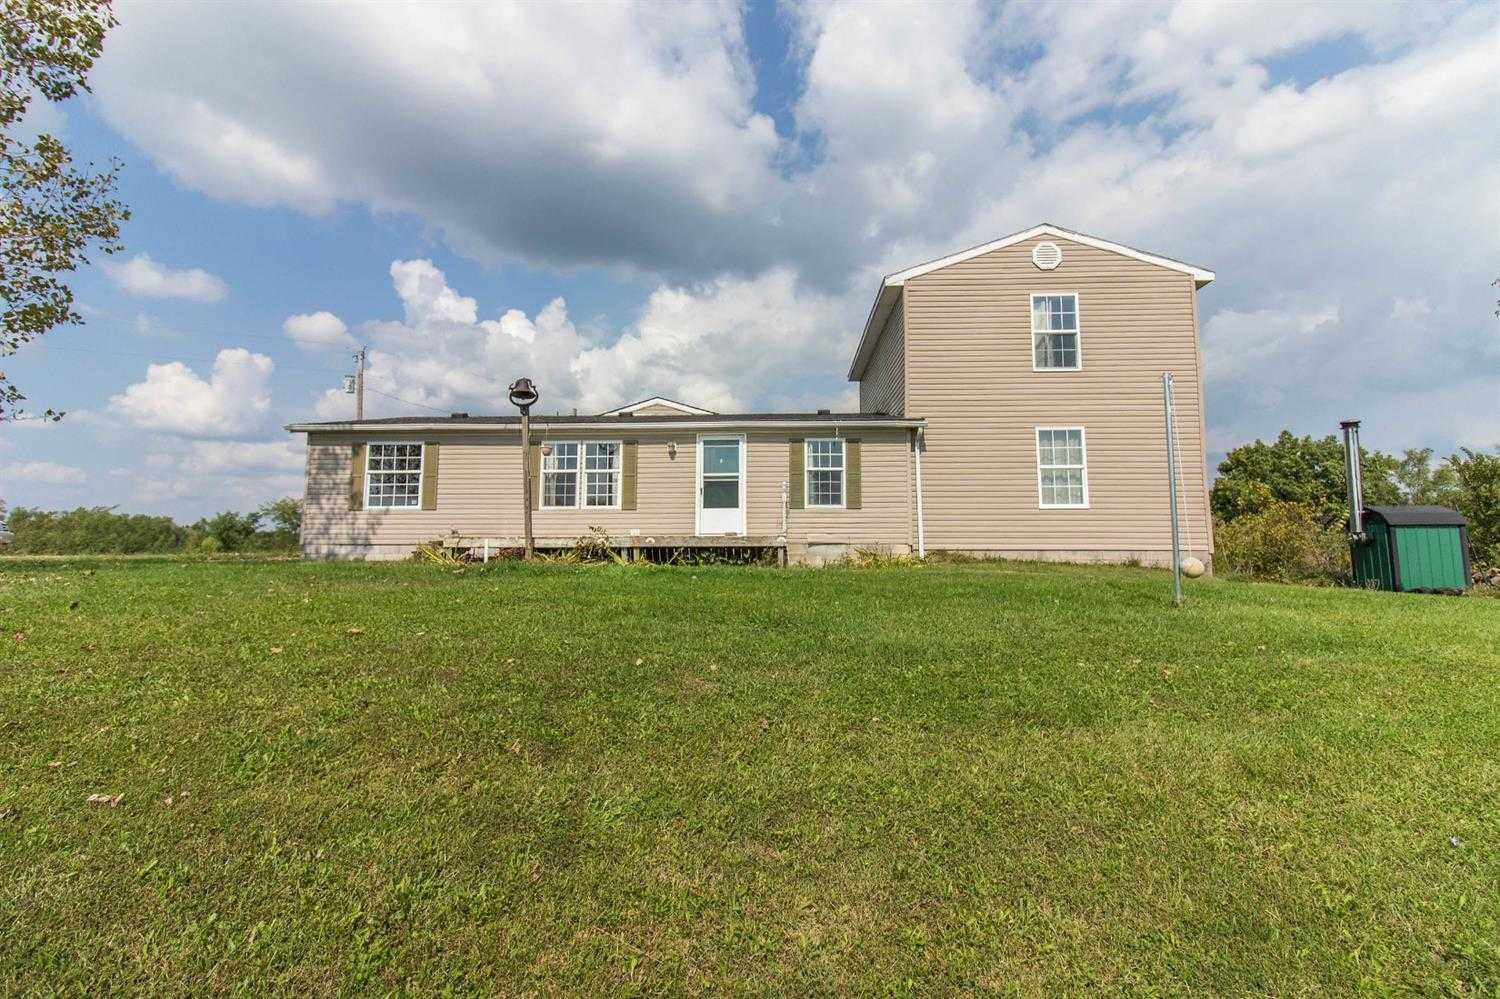 $215,000 - 6Br/4Ba -  for Sale in Rural, Cynthiana